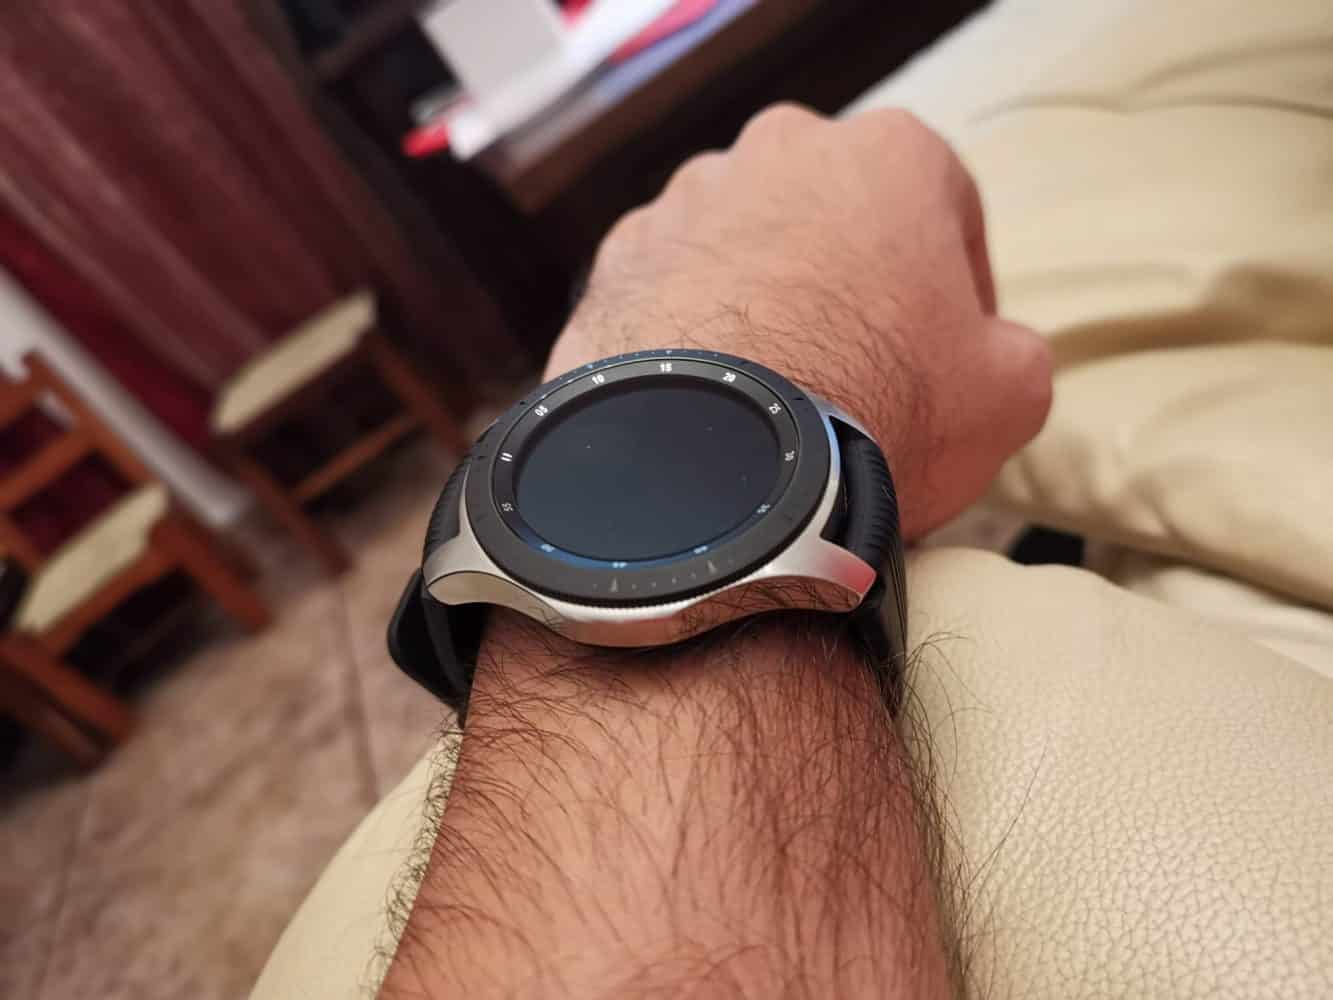 Samsung Galaxy Watch 3: finally the secrets are over!